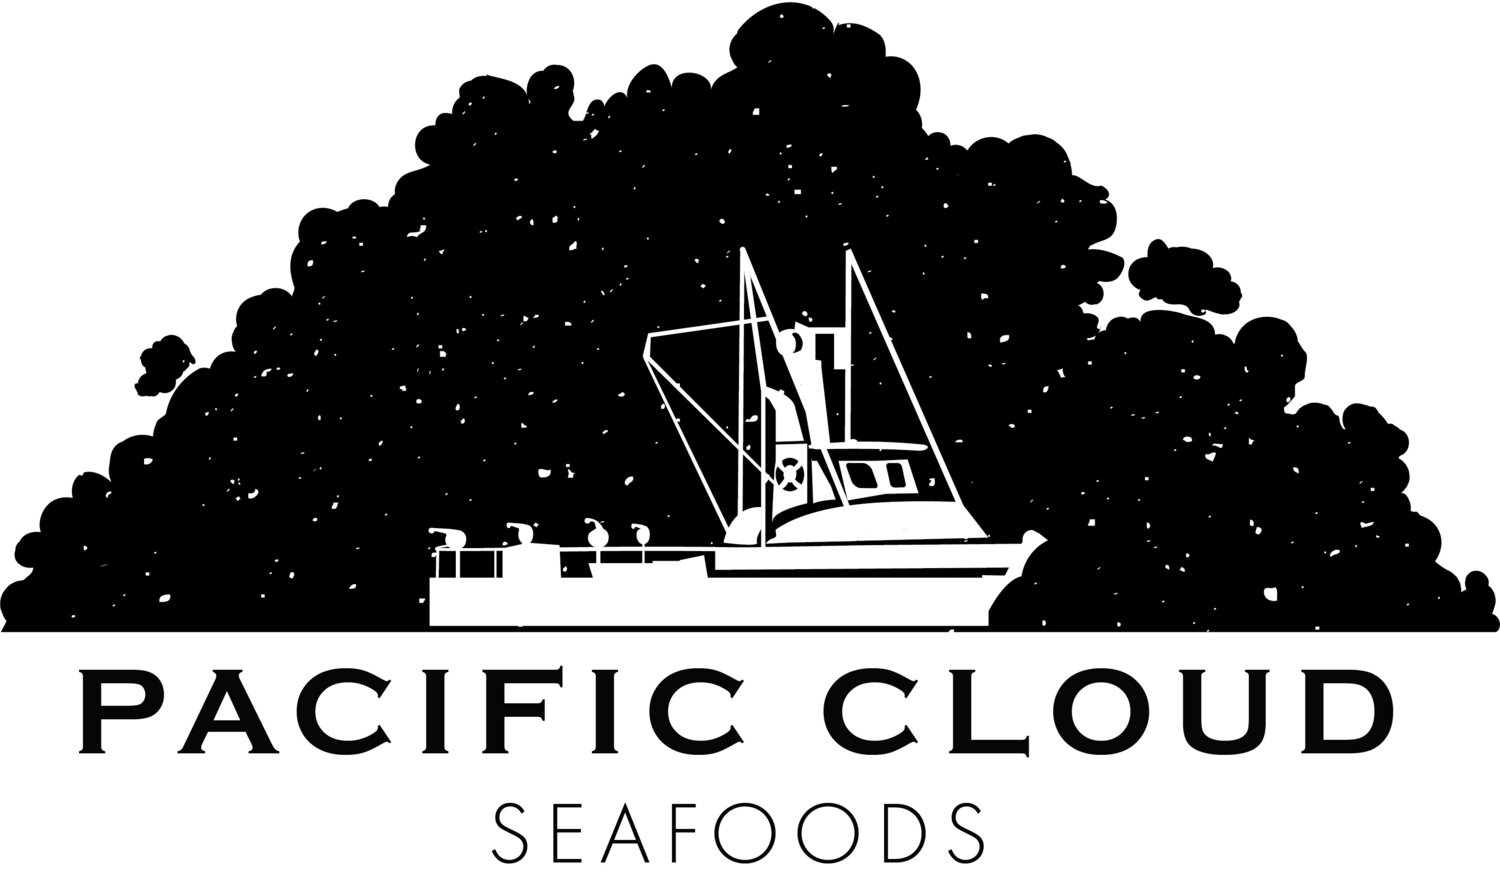 Pacific Cloud Seafoods